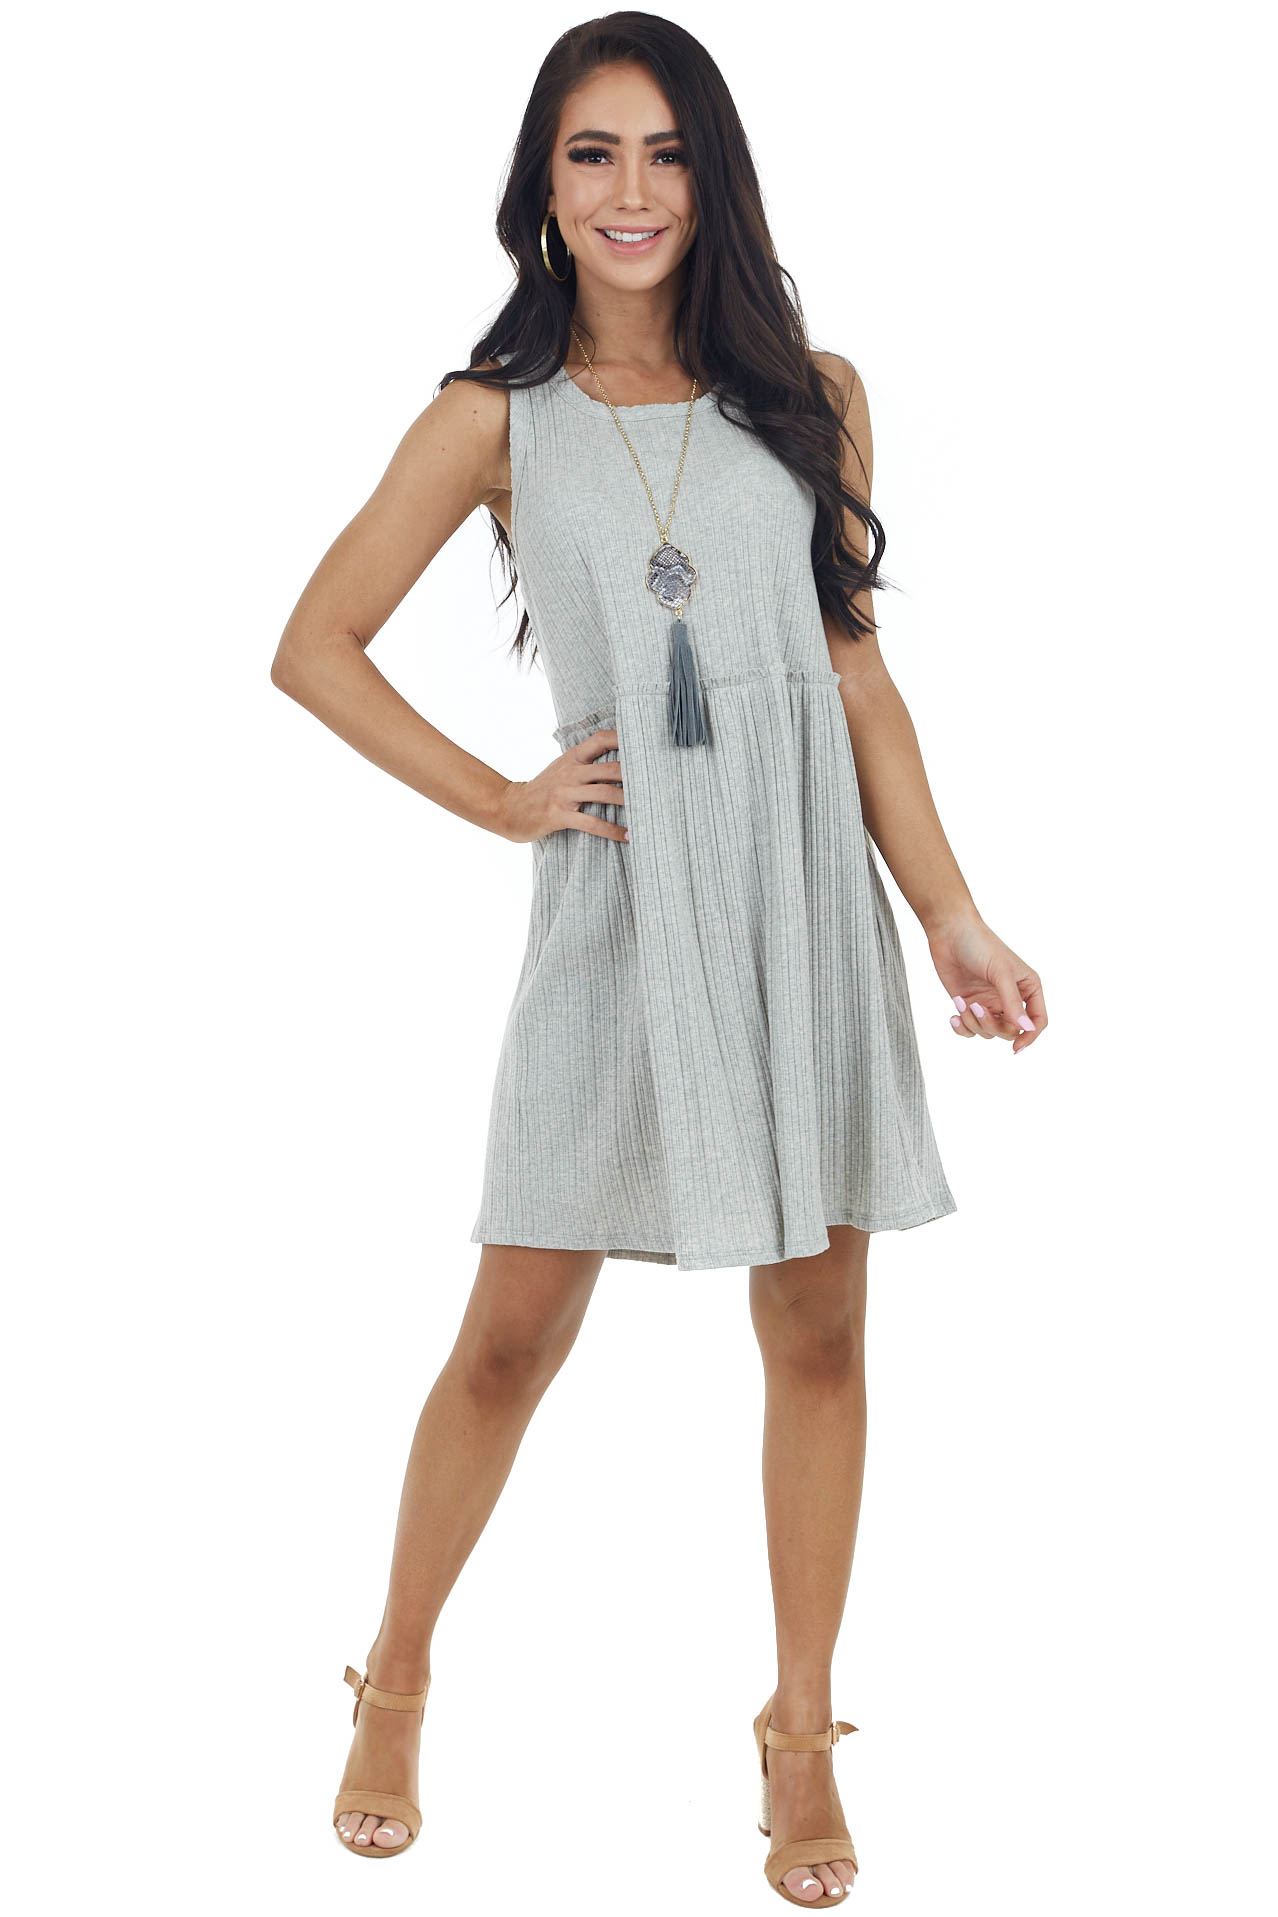 Heather Grey Ribbed Knit Sleeveless Dress with Raw Edges